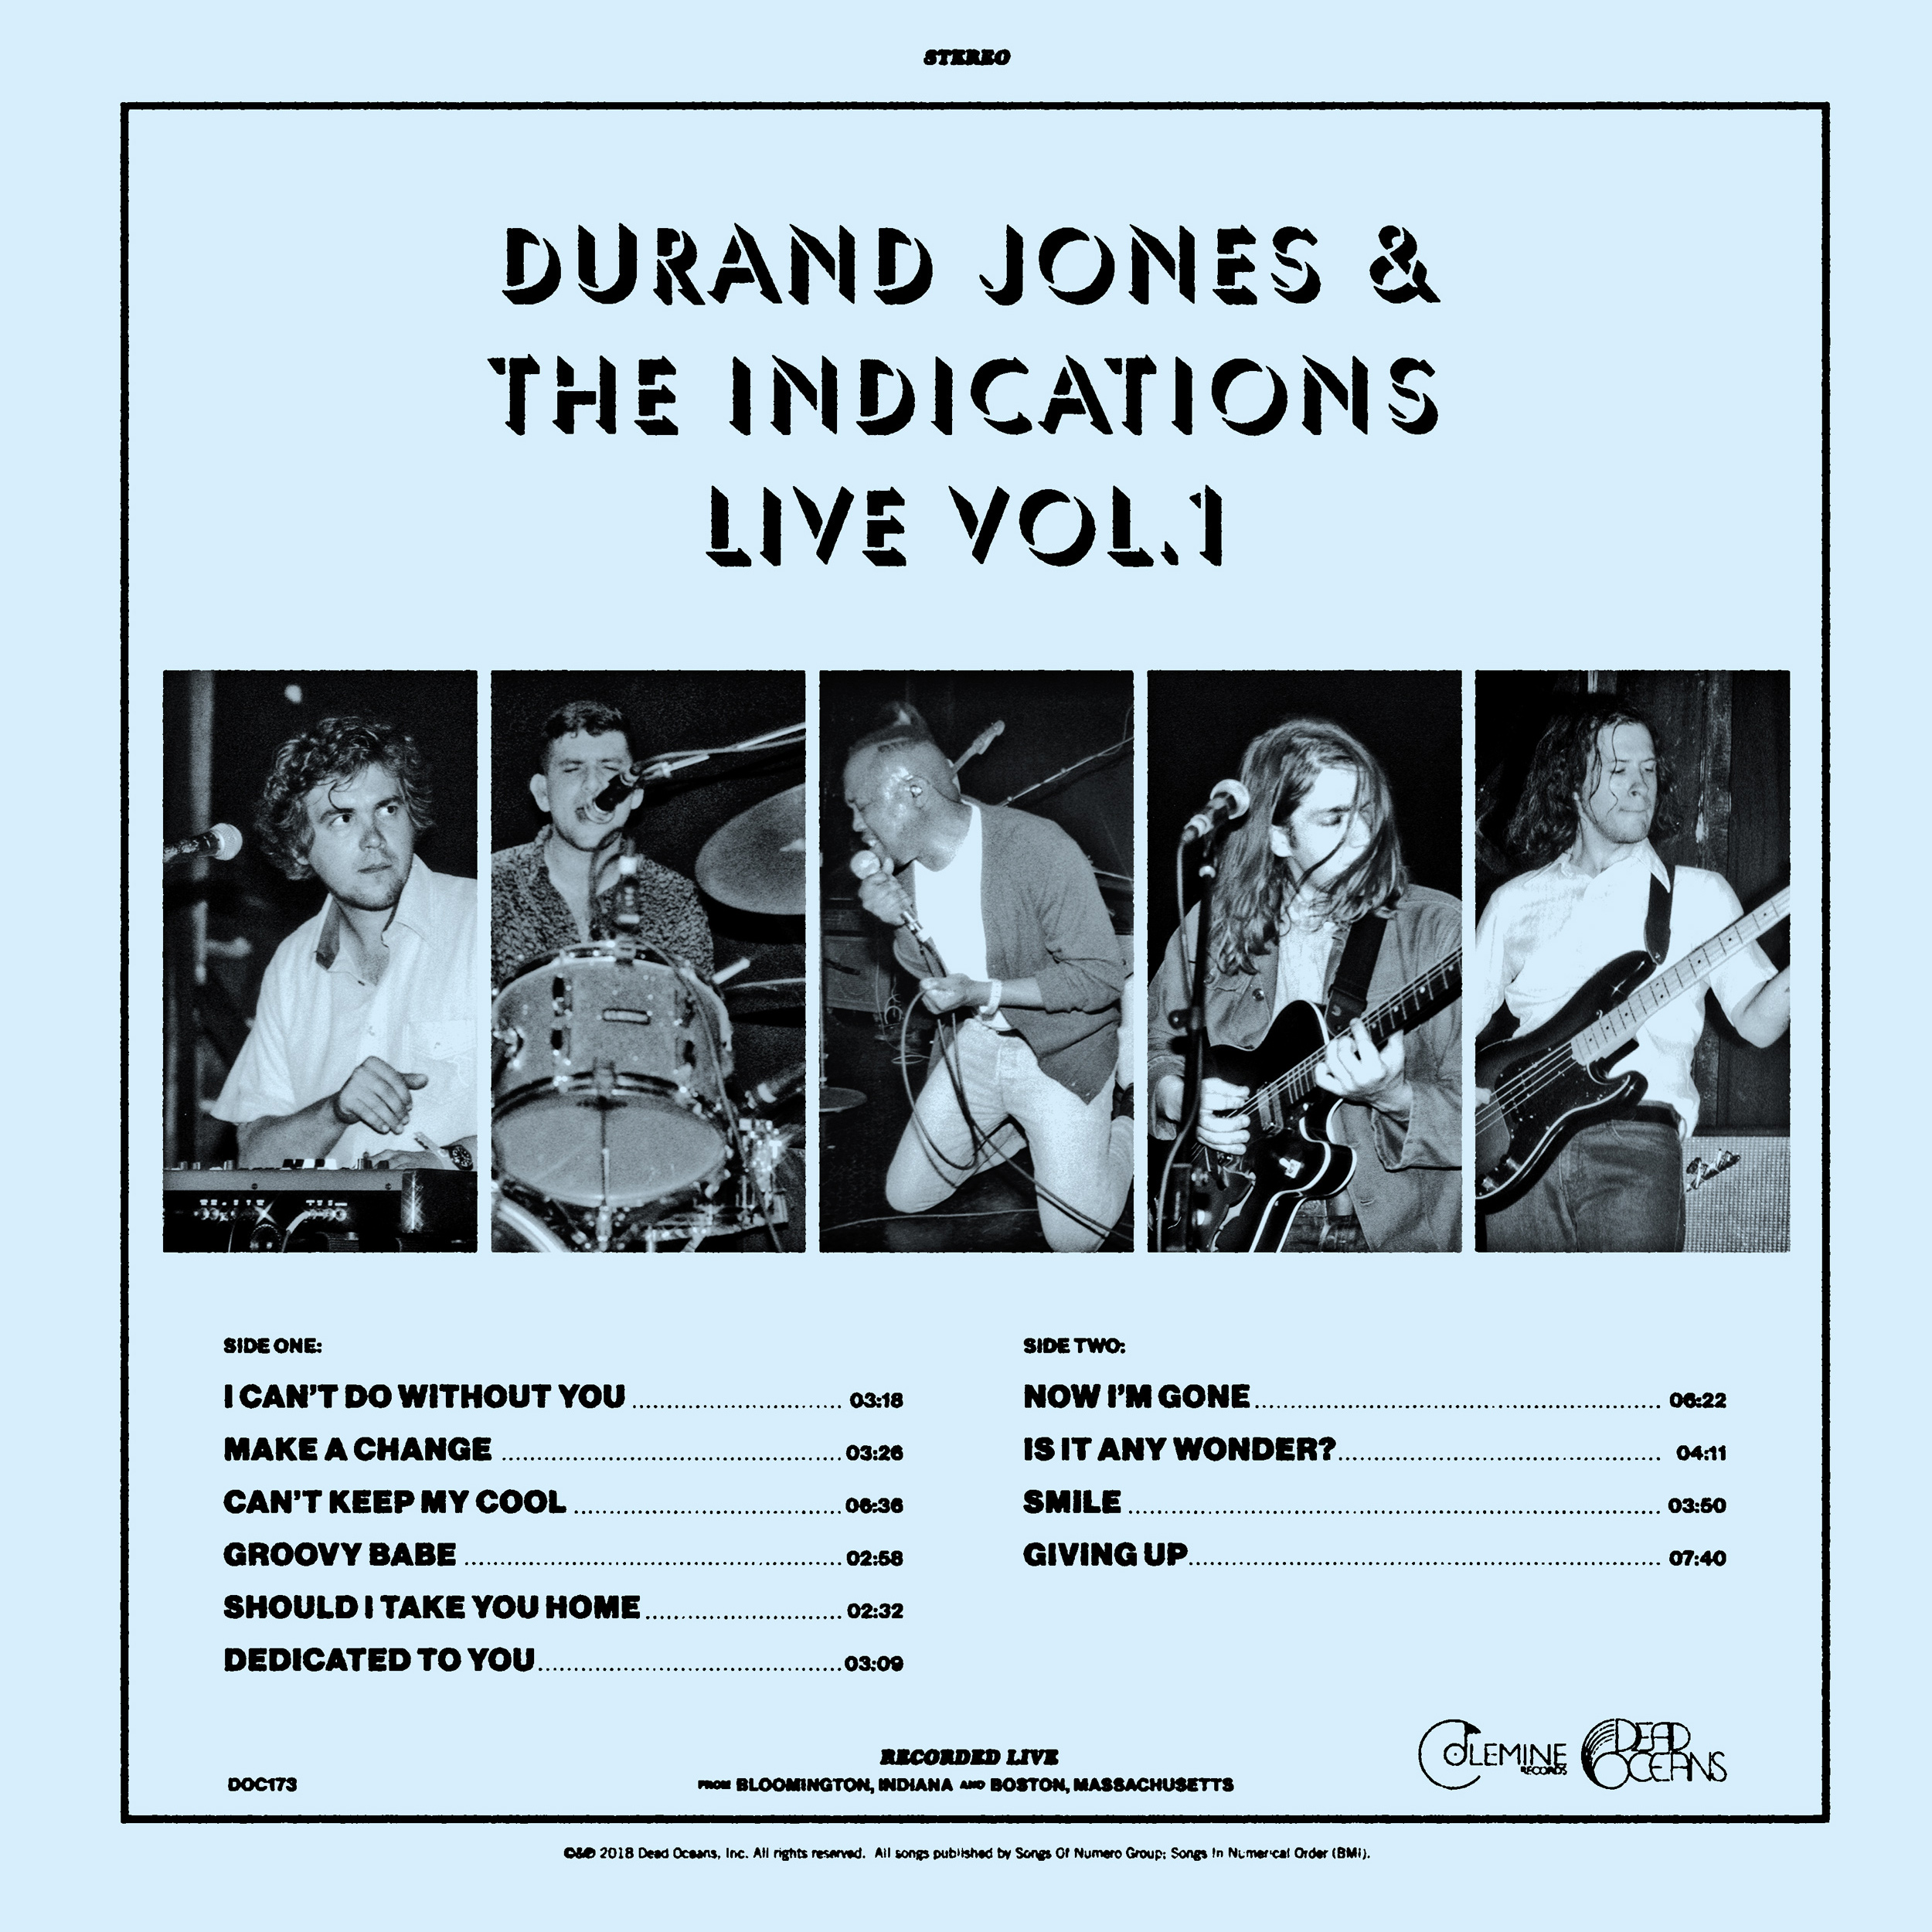 Durand Jones & The Indications - Durand Jones & The Indications Live Vol. 1